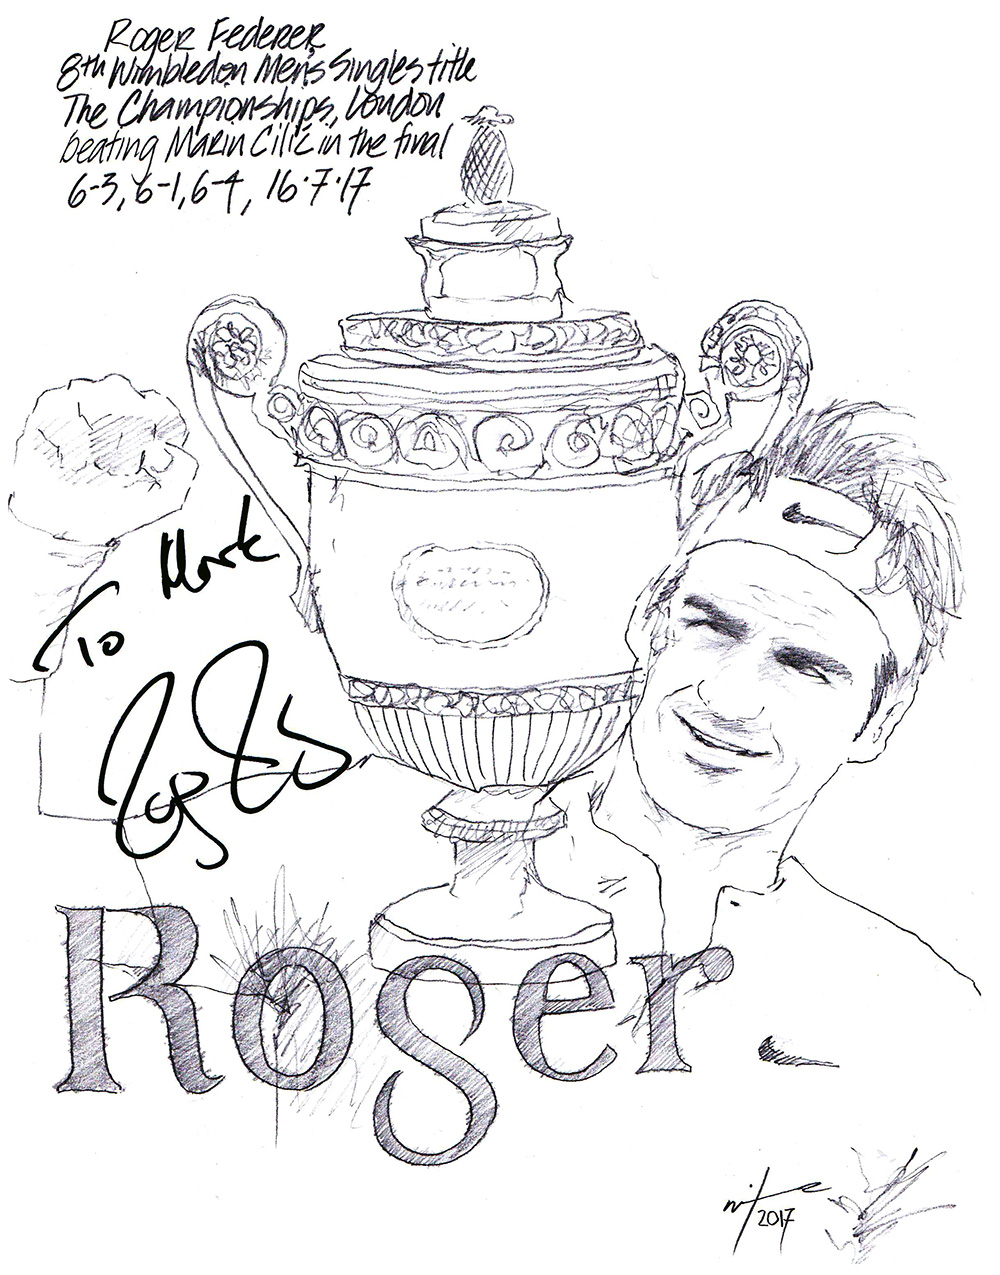 Autographed drawing of tennis player Roger Federer with his 8th Wimbledon Men's Singes Title